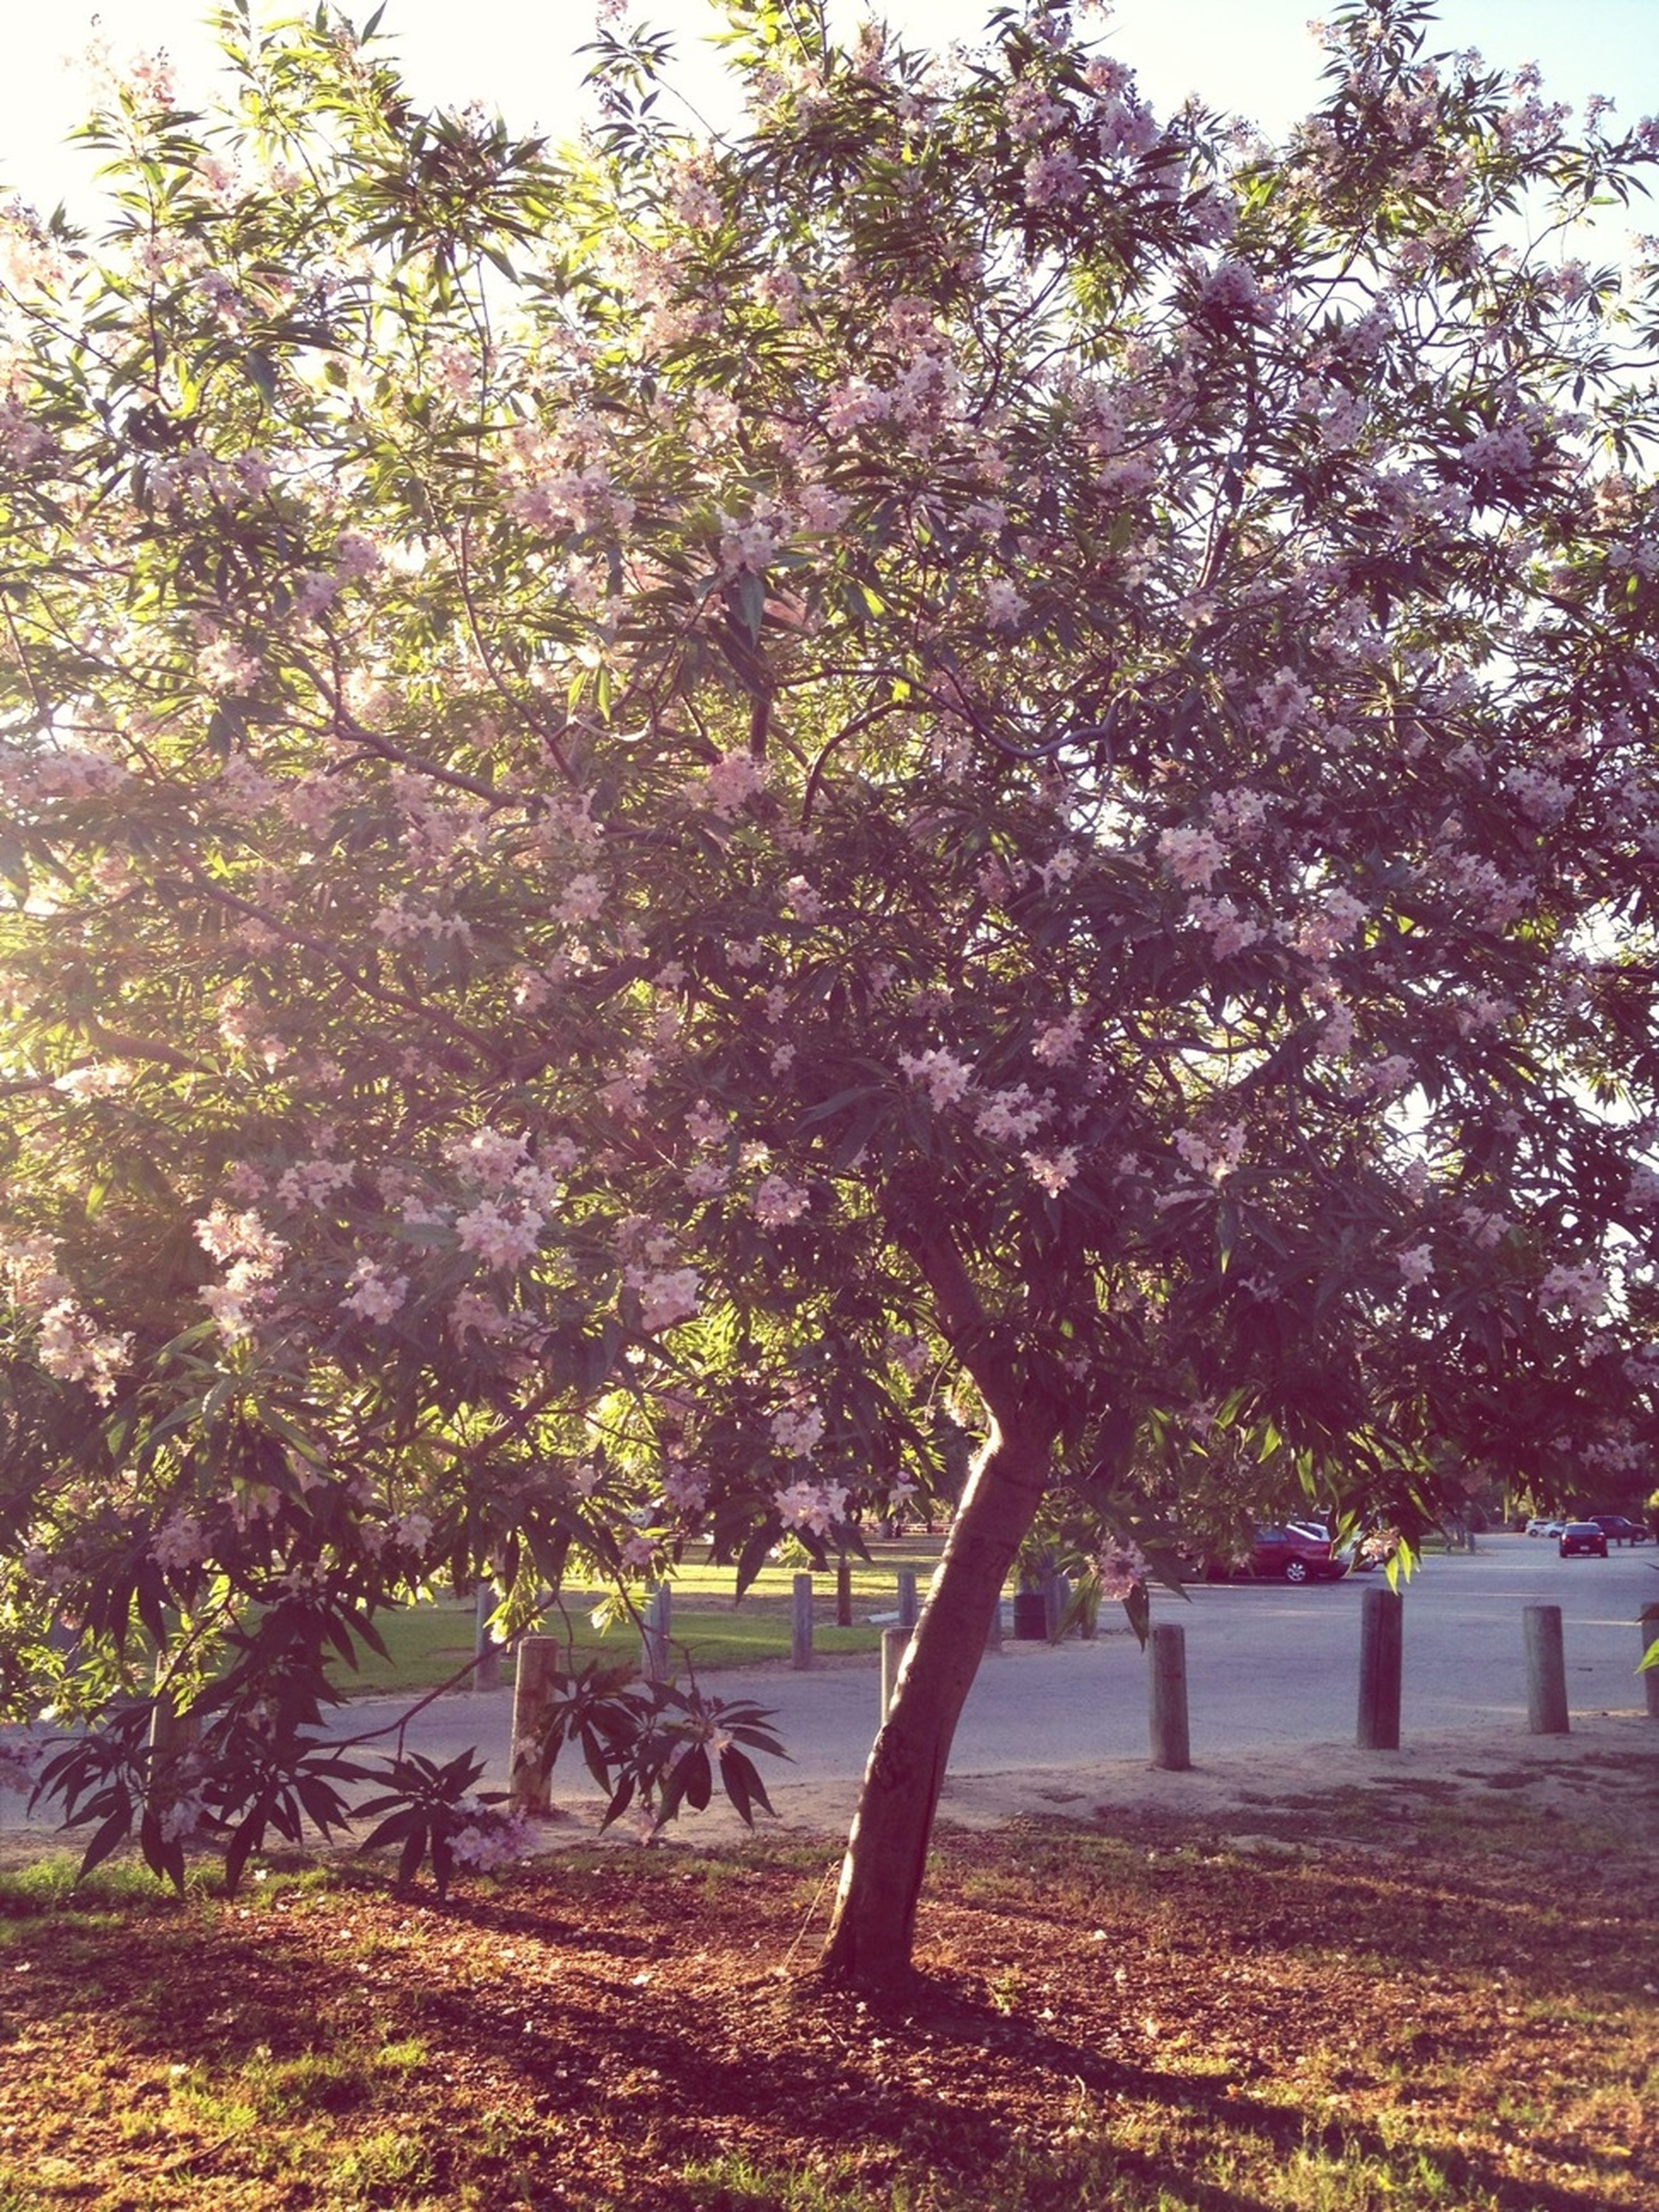 tree, growth, flower, beauty in nature, nature, tranquility, autumn, branch, park - man made space, tranquil scene, change, scenics, season, sunlight, day, field, park, blossom, freshness, outdoors